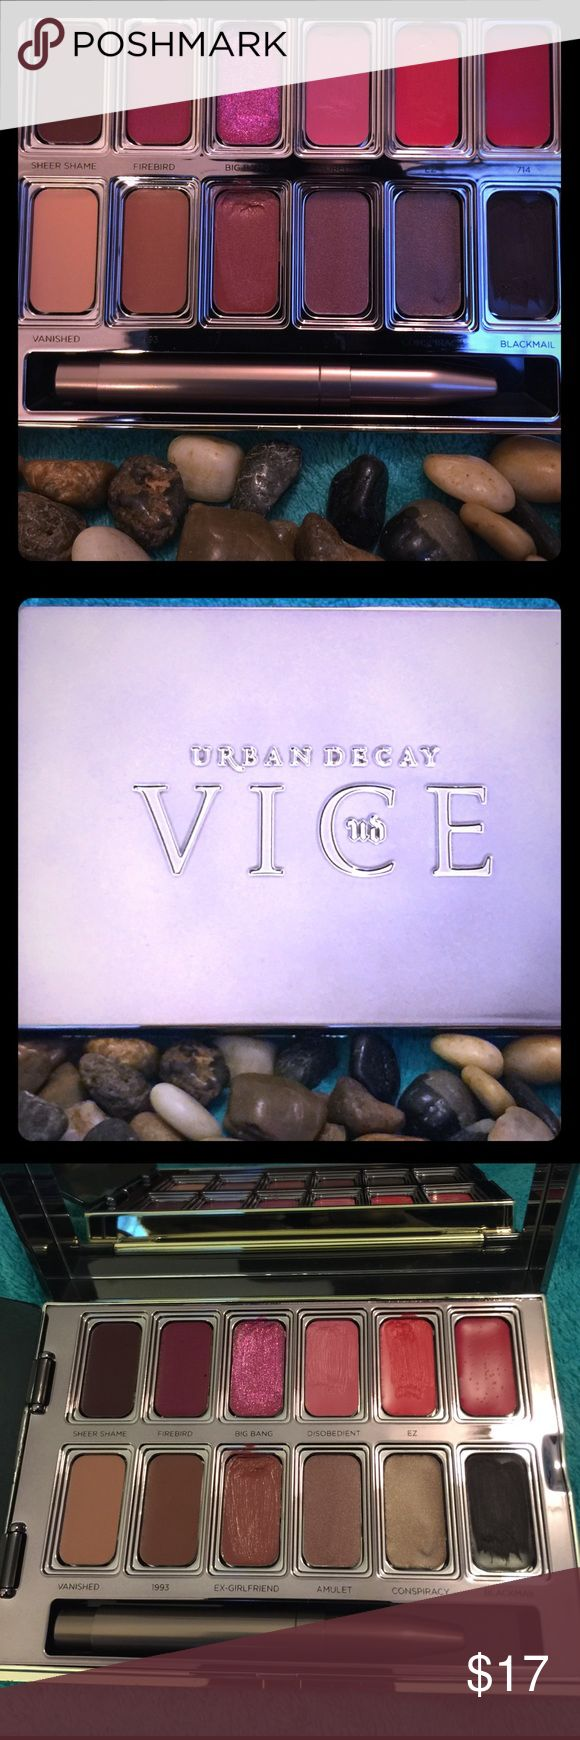 Urban Decay Lipstick Palette Urban Decay Vice Lipstick  Palette with 12 Must-Have Shades used twice. Urban Decay Makeup Lipstick